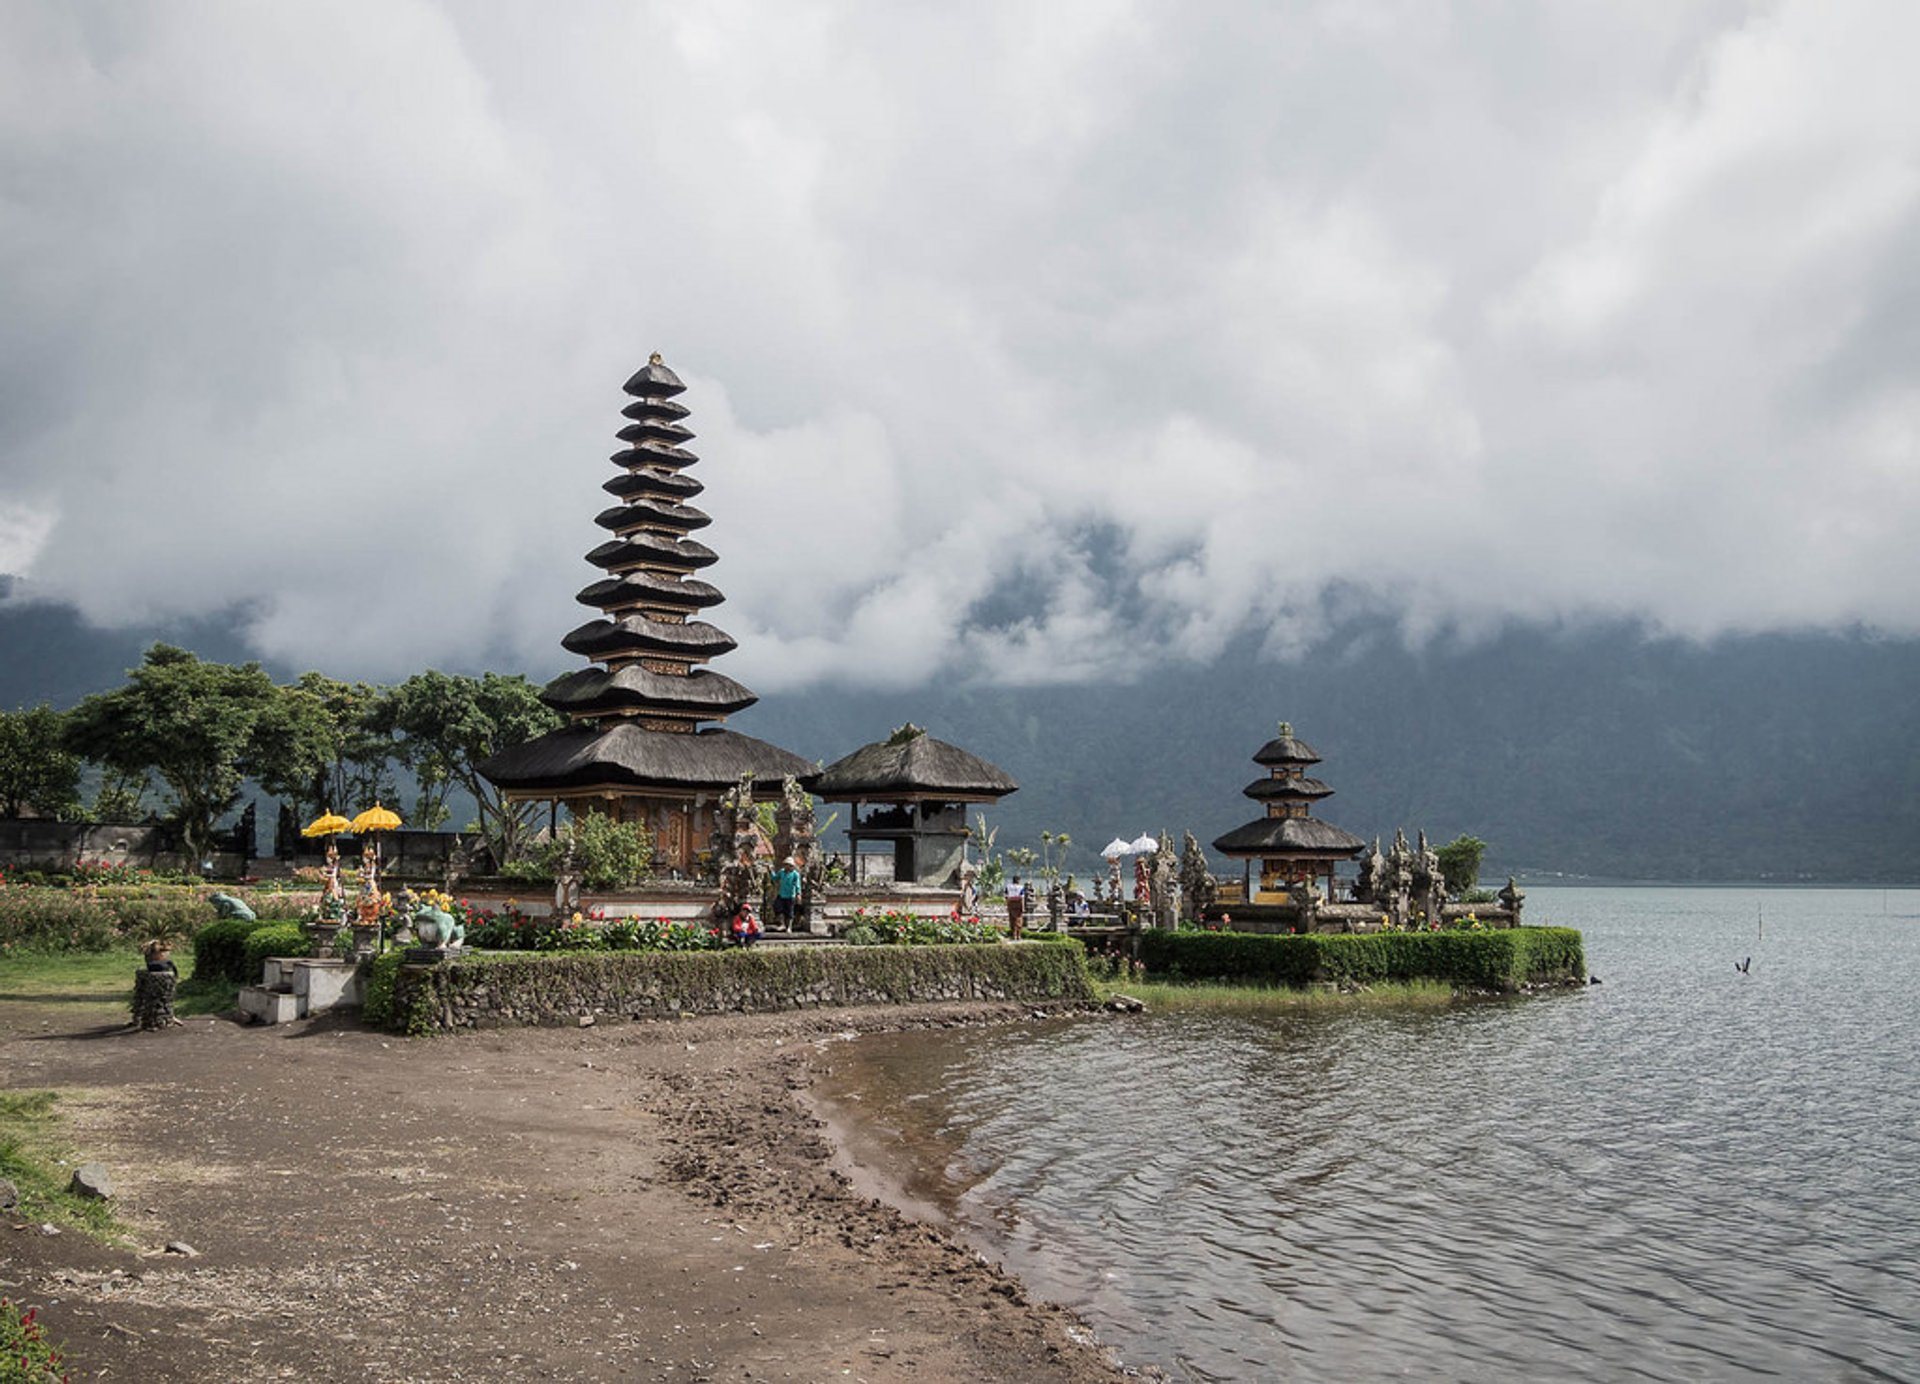 Wet Monsoon or Rainy Season in Bali 2019 - Best Time